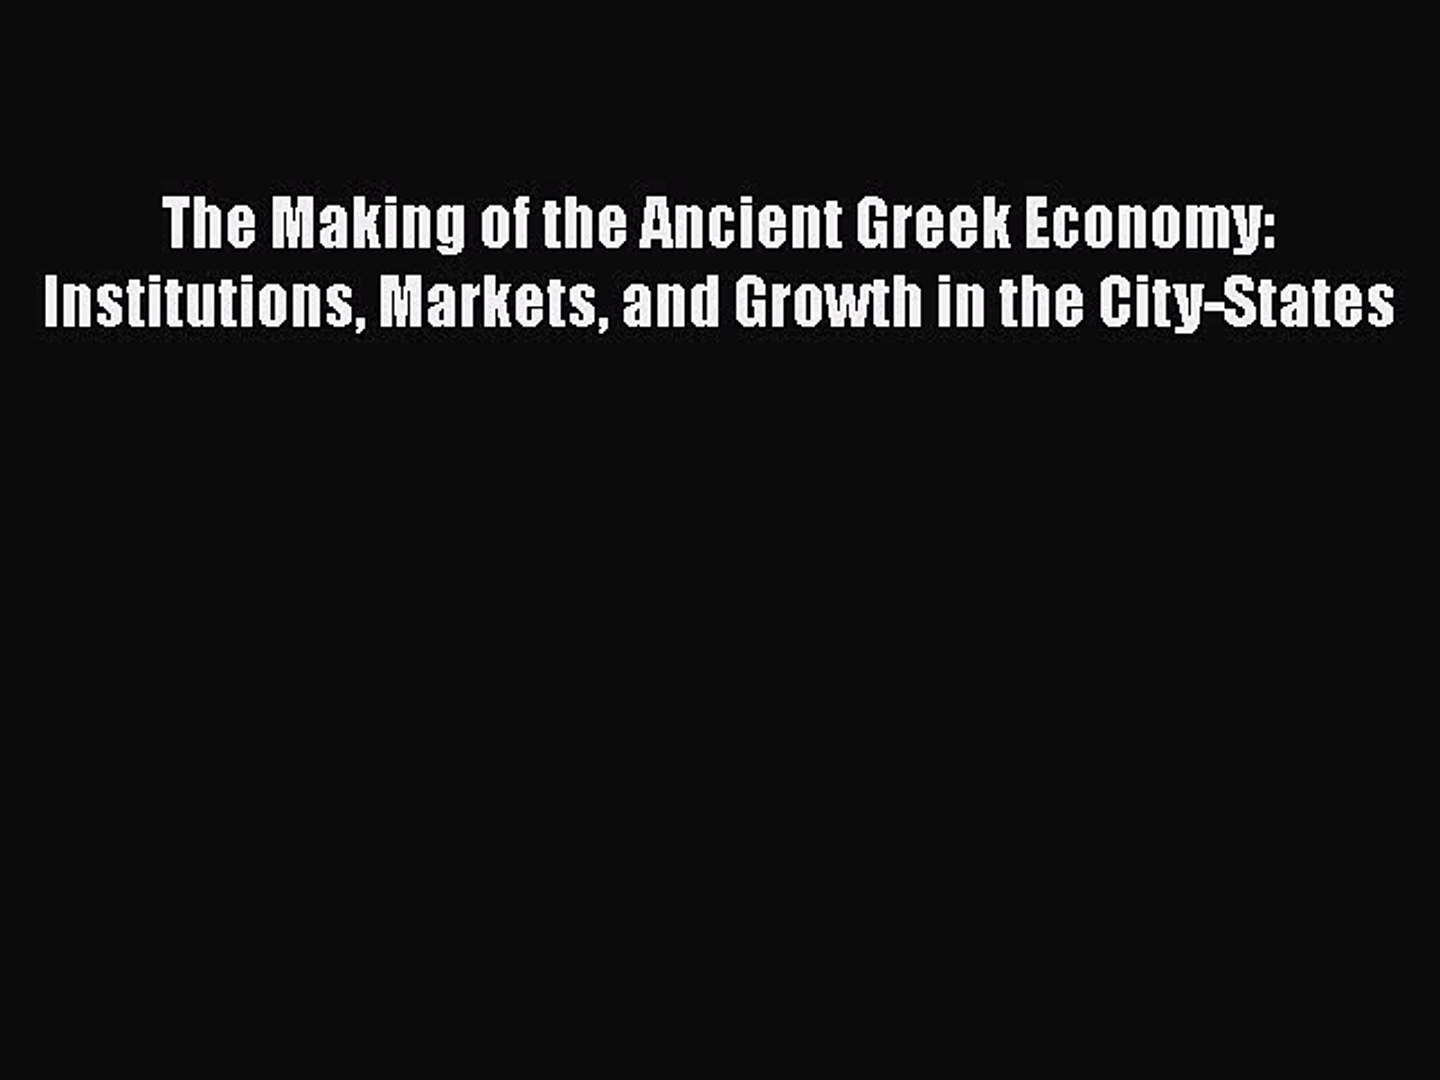 Read The Making of the Ancient Greek Economy: Institutions Markets and Growth in the City-States